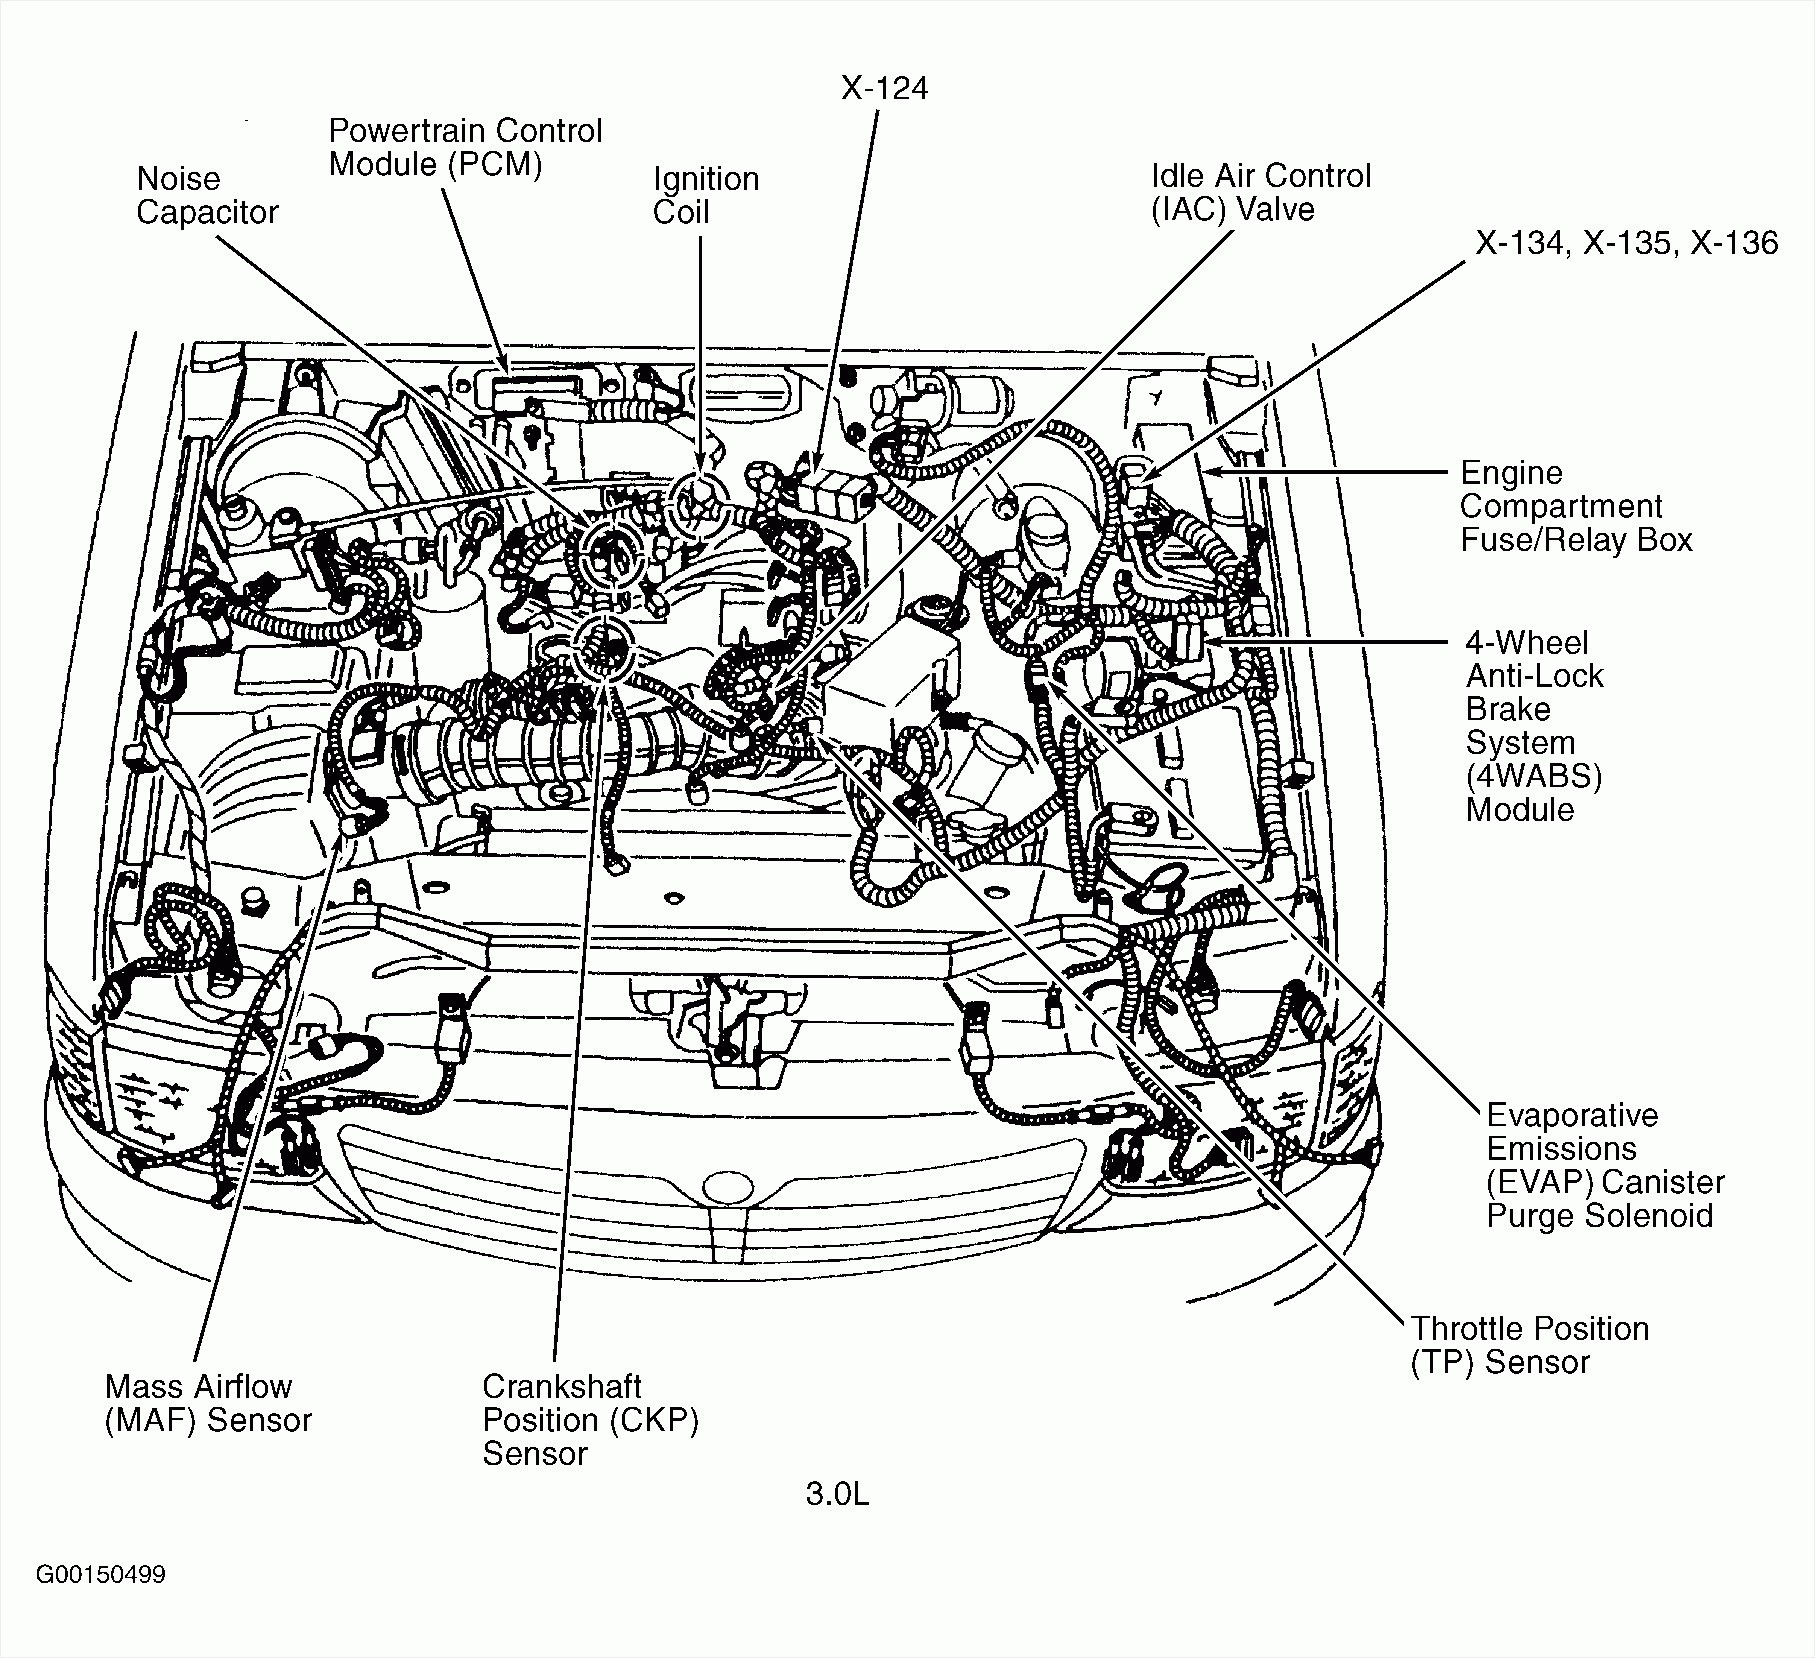 mx5 engine bay diagram my wiring diagram Volkswagen Jetta Fuse Box Diagram  2013 volkswagen passat se